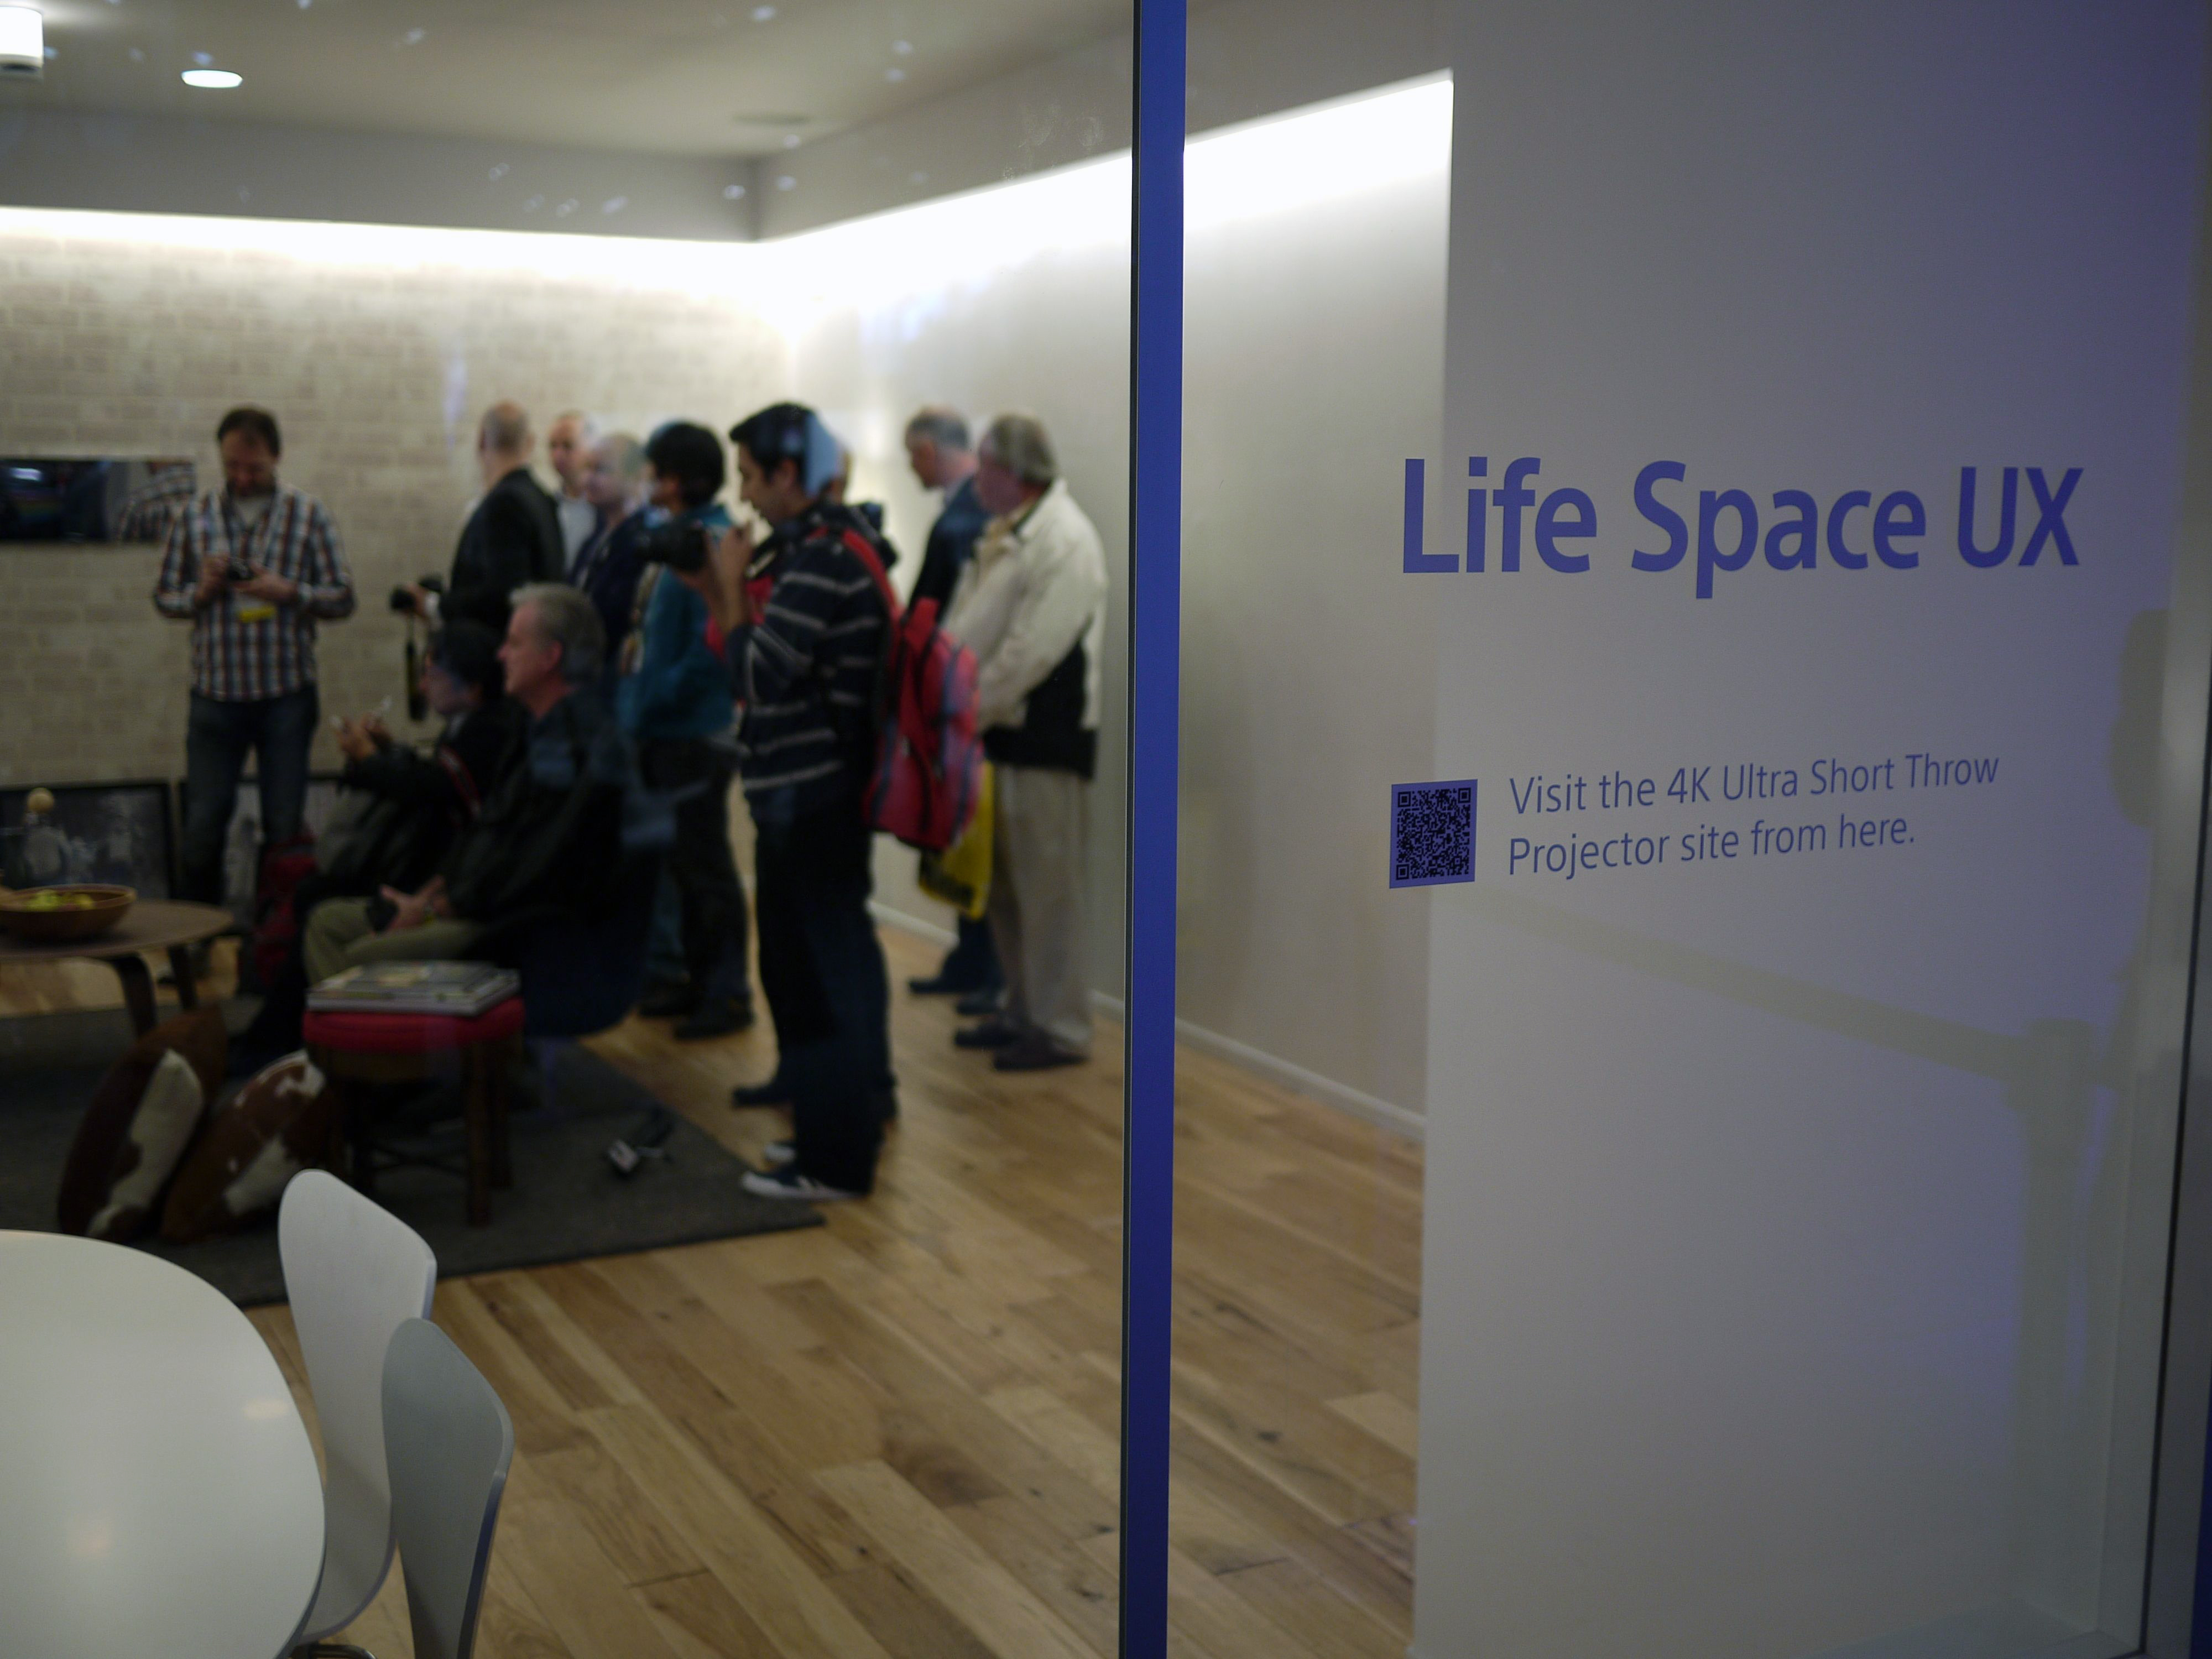 life space ux